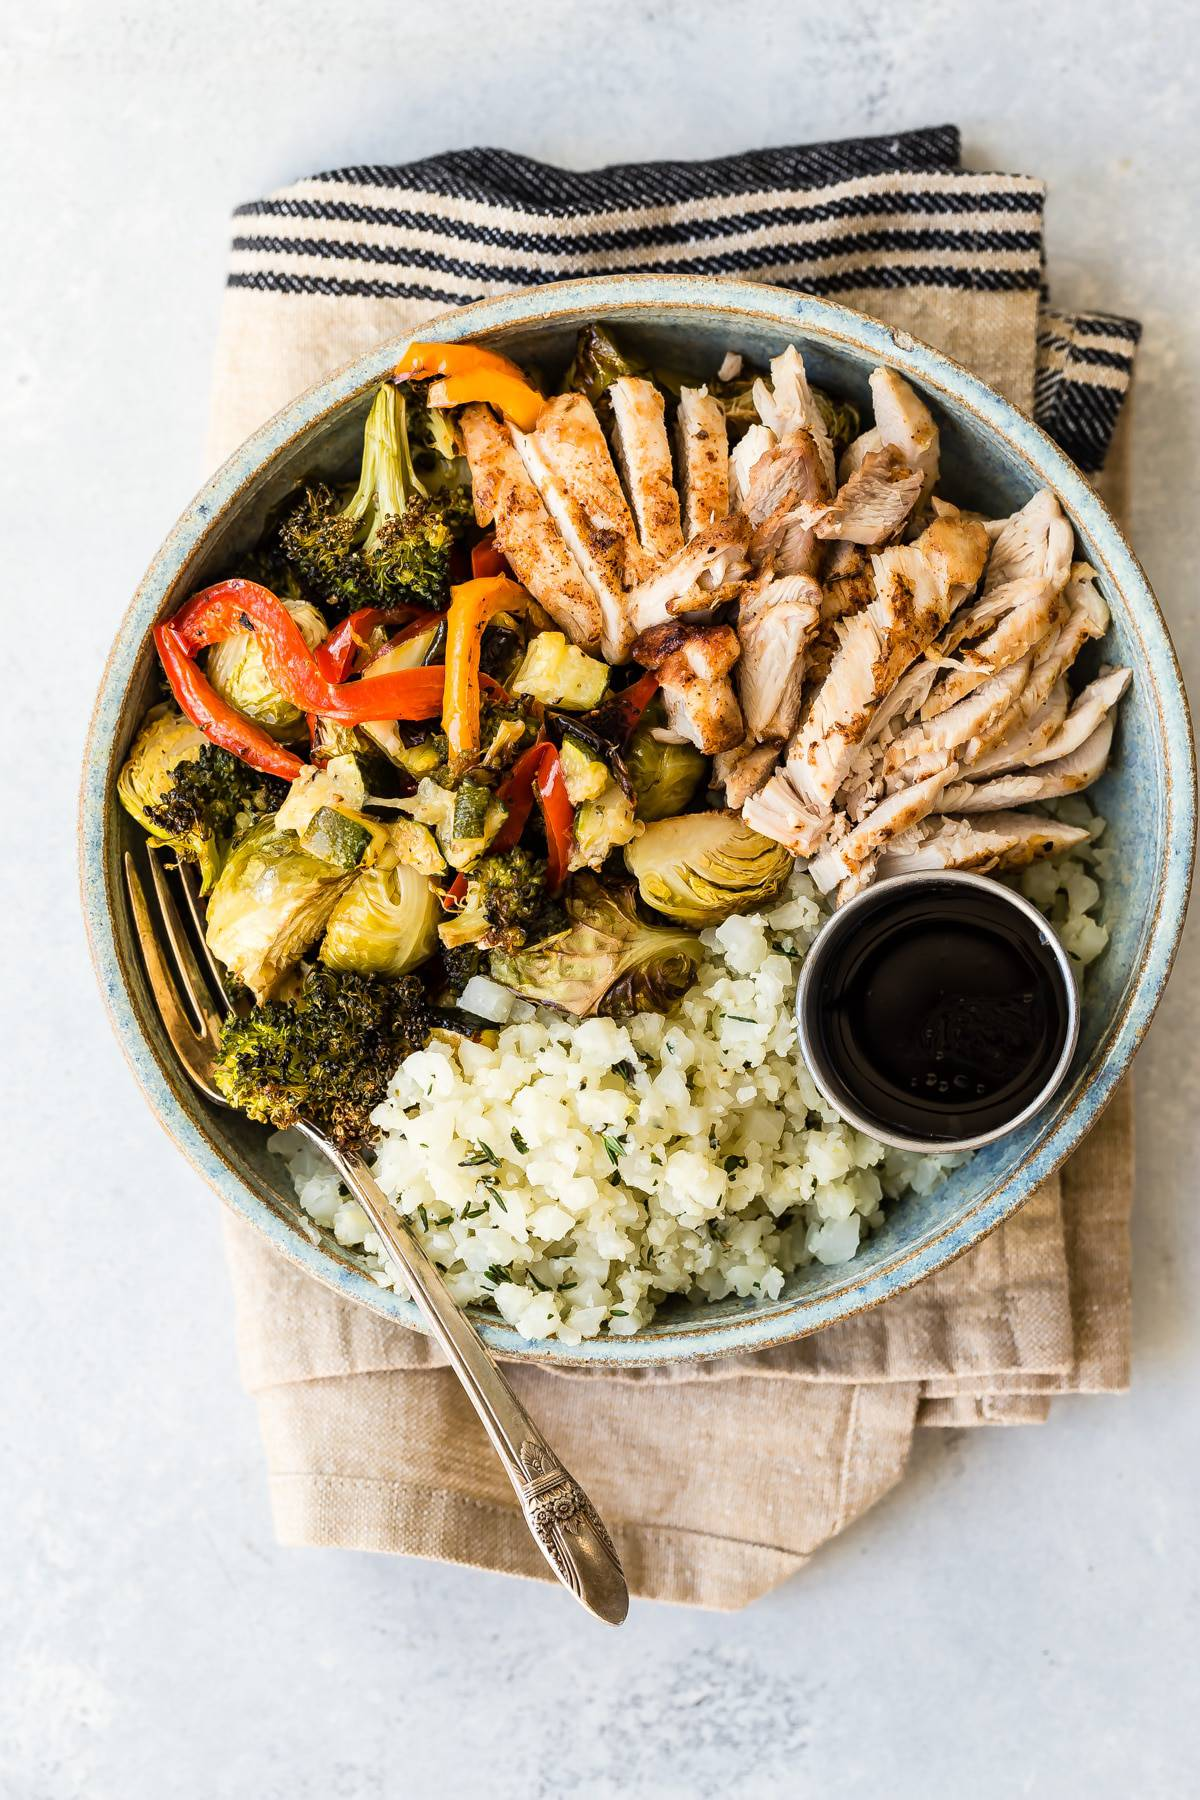 A healthy and delicious low carb chicken bowl loaded with roasted veggies, chicken and cauliflower rice. #lowcarb #paleo #healthyfood #chicken #recipes #cauliflowerrice